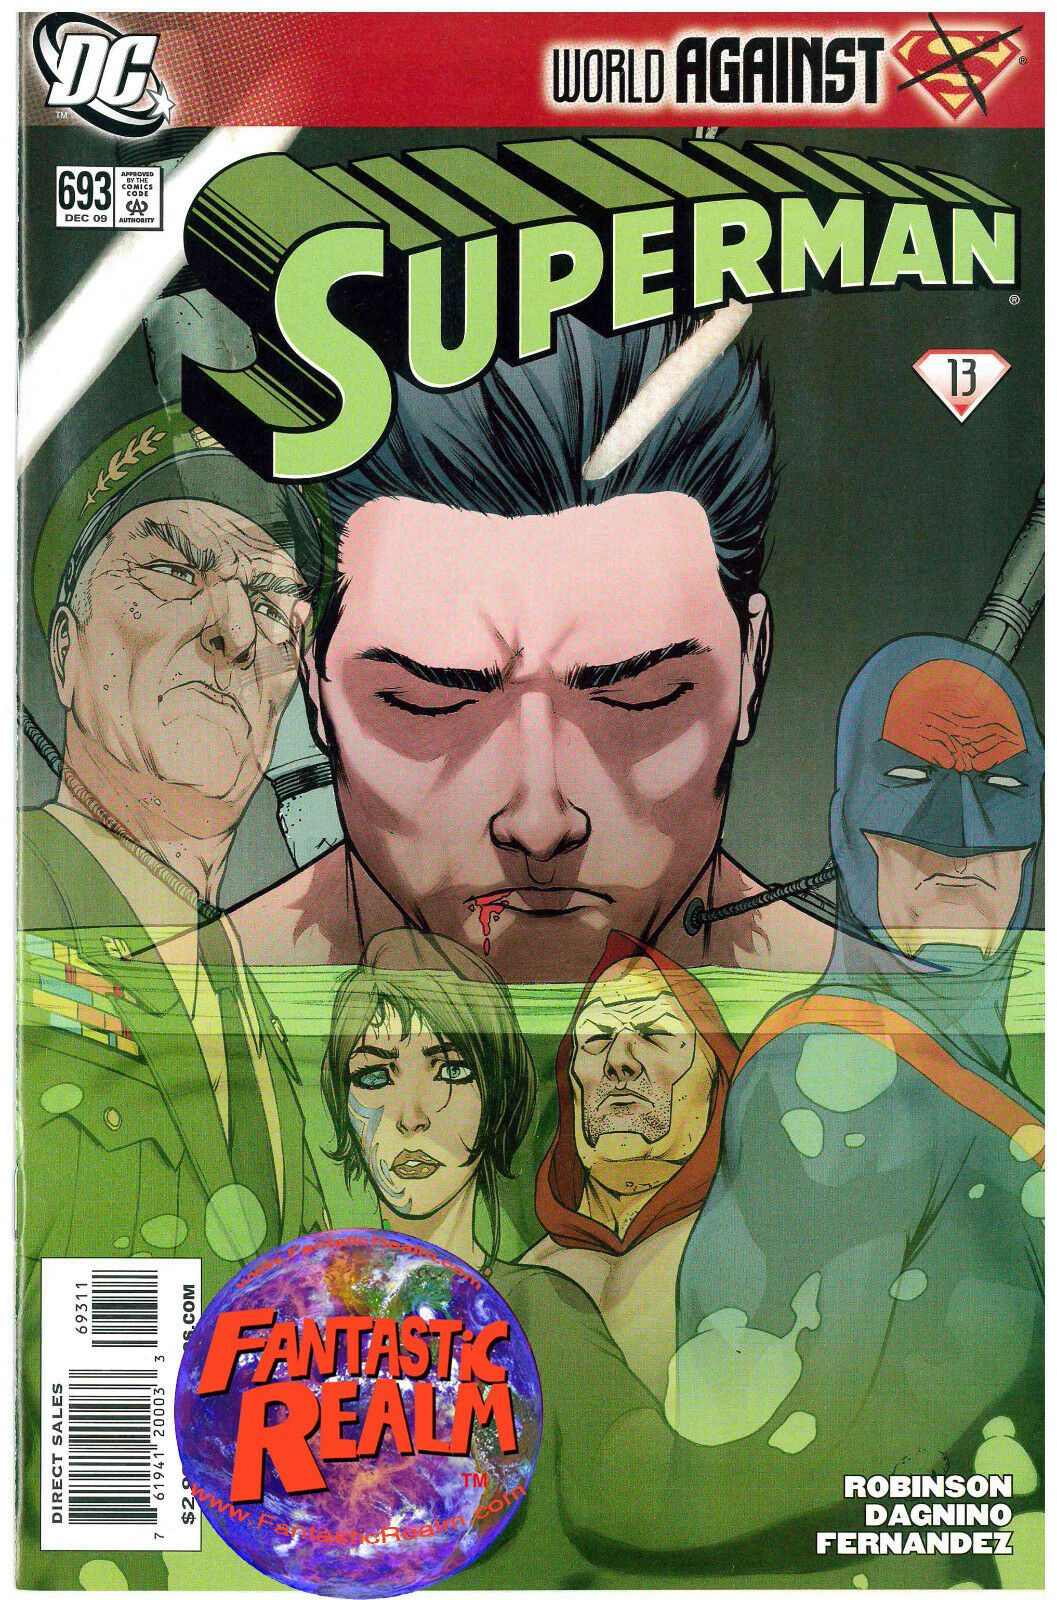 SUPERMAN: WORLD AGAINST SUPERMAN #693 DC COMICS